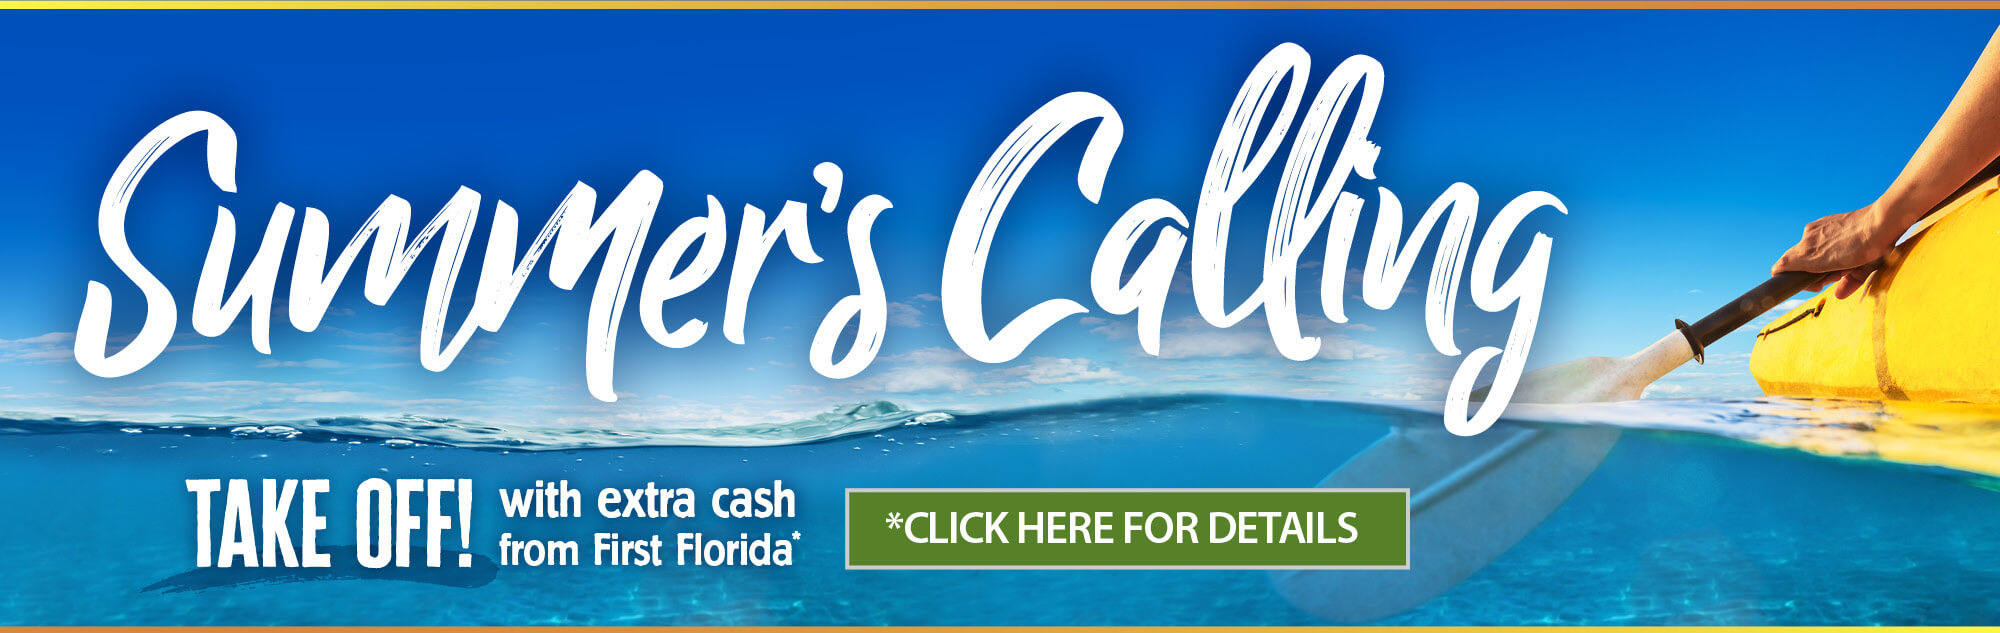 Take off with extra cash from First Florida. Offer expires July thirty first two thousand and twenty one. Click here for details.